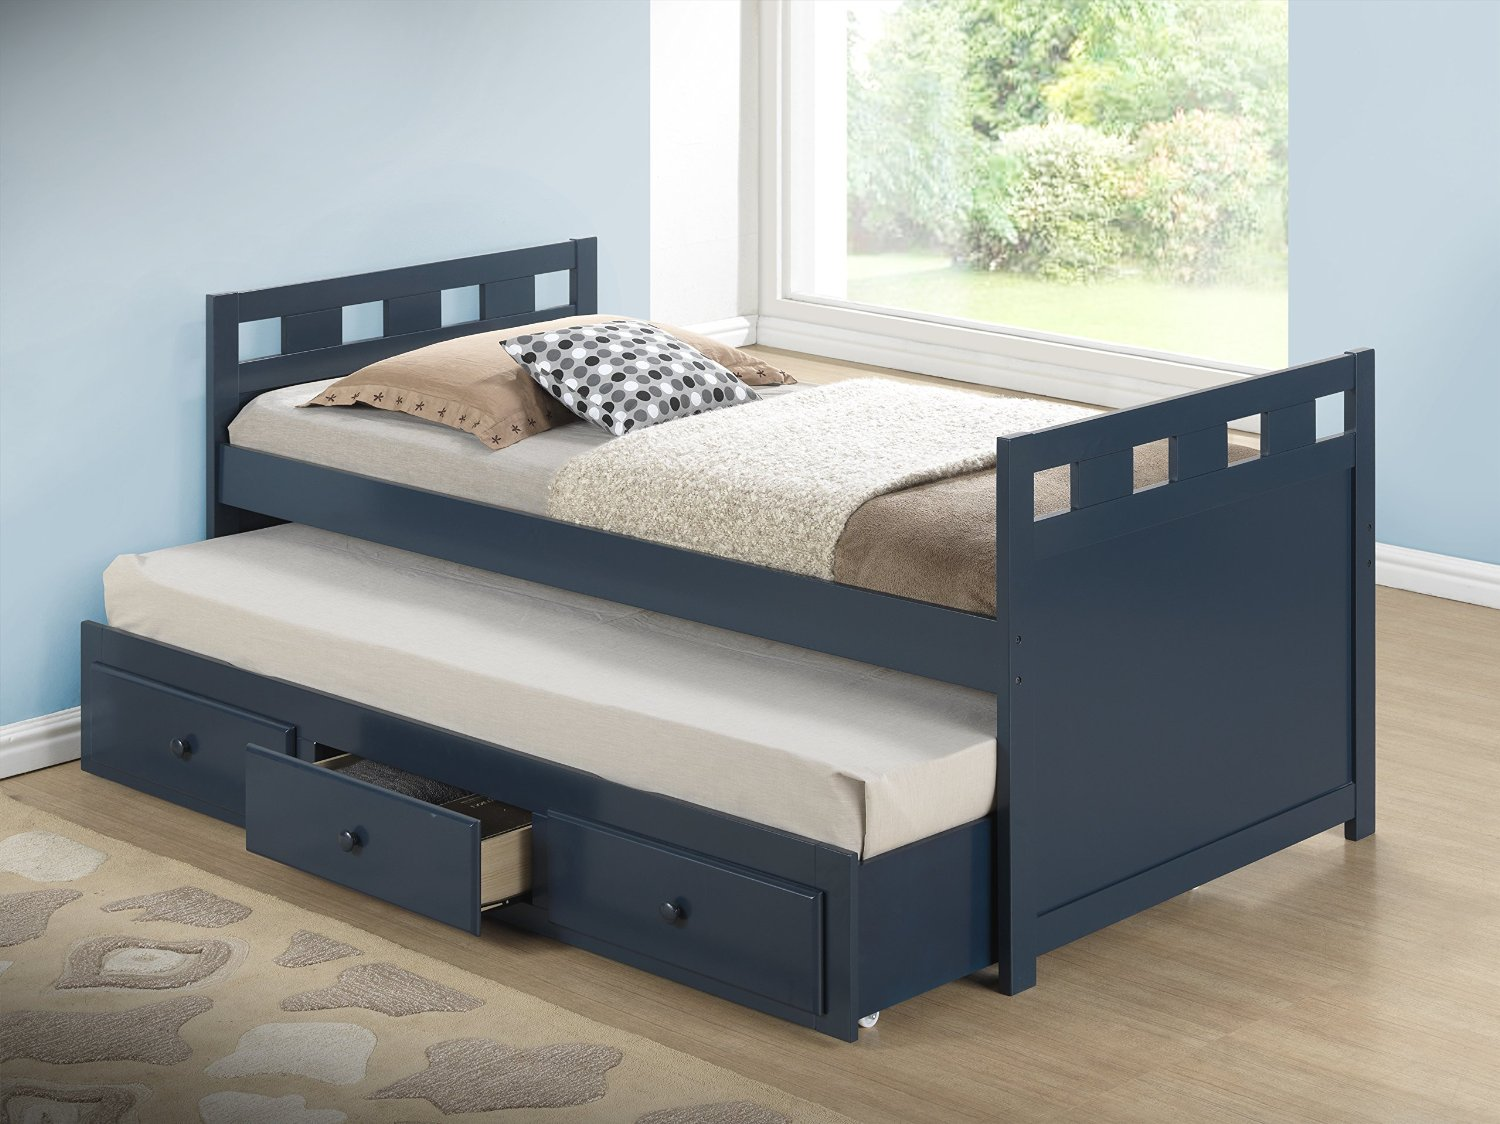 Total fab twin bed with pull out slide out trundle bed underneath best beds for small Bed with mattress